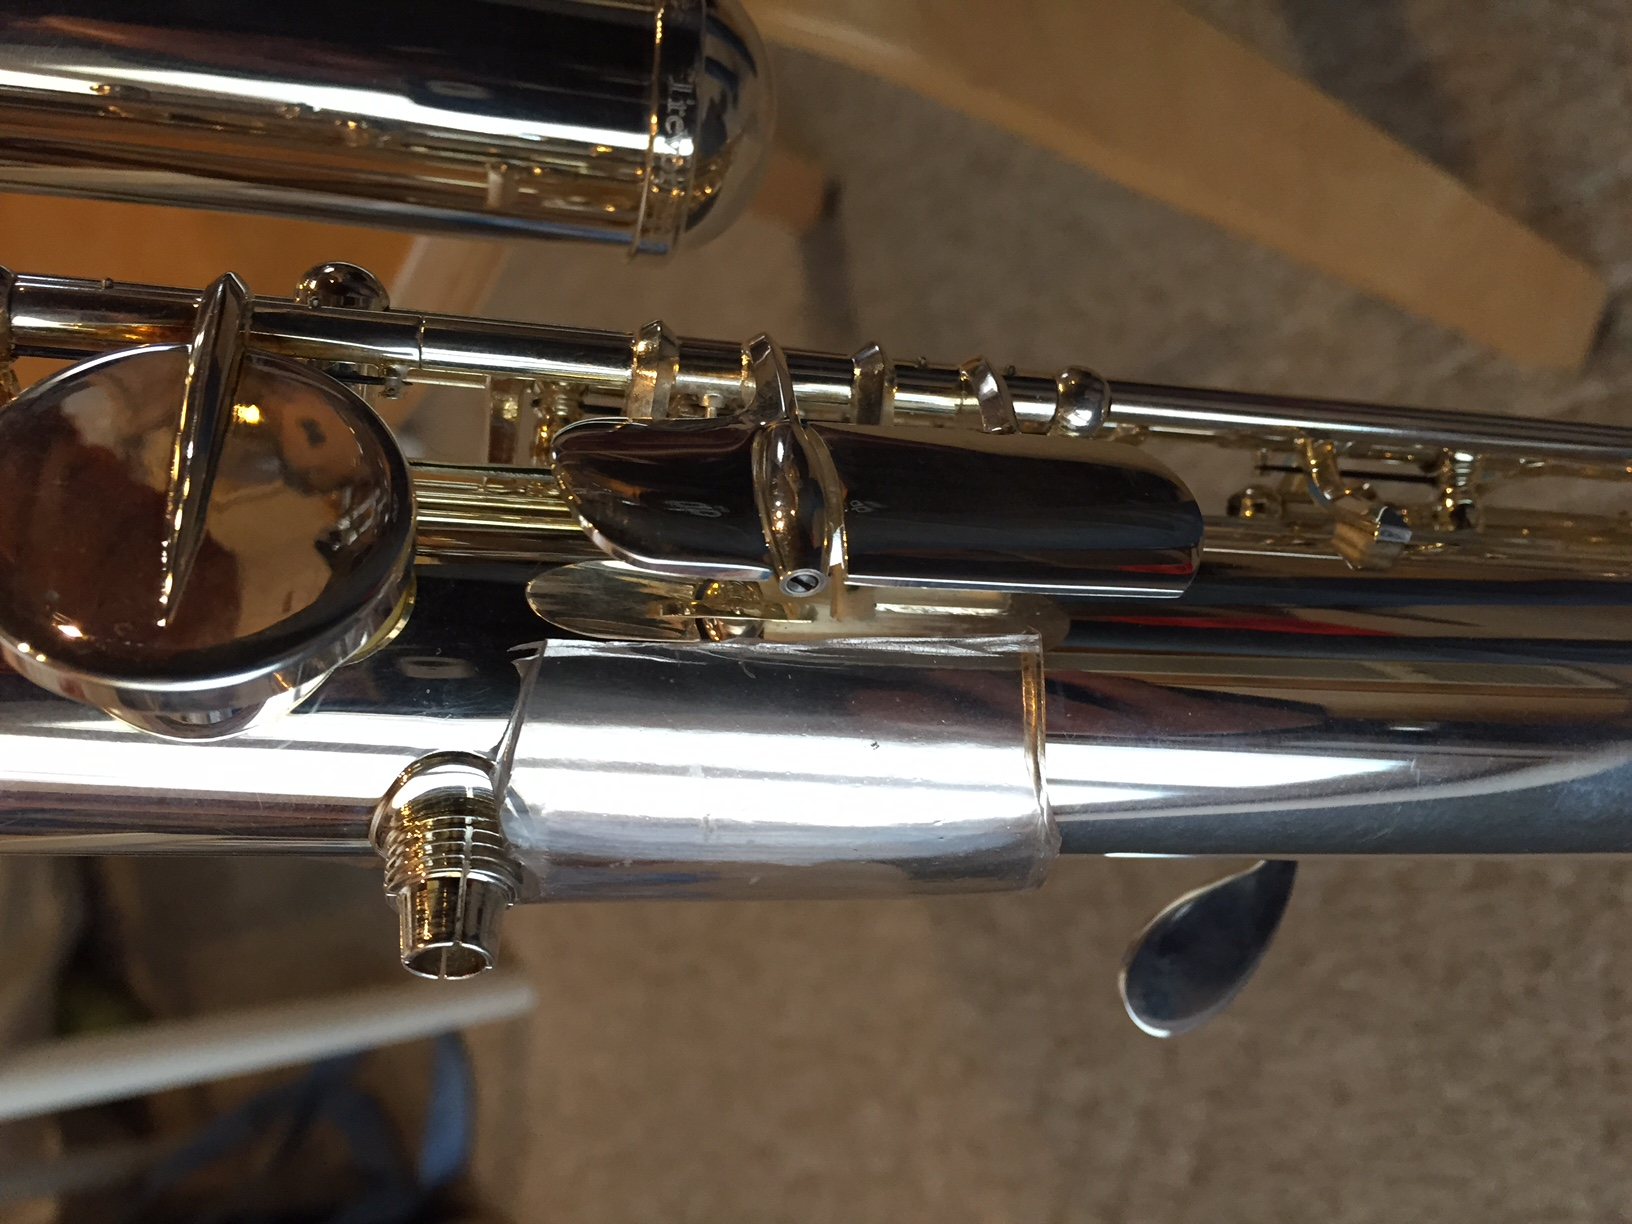 another view of the plastic tube part on my bass flute